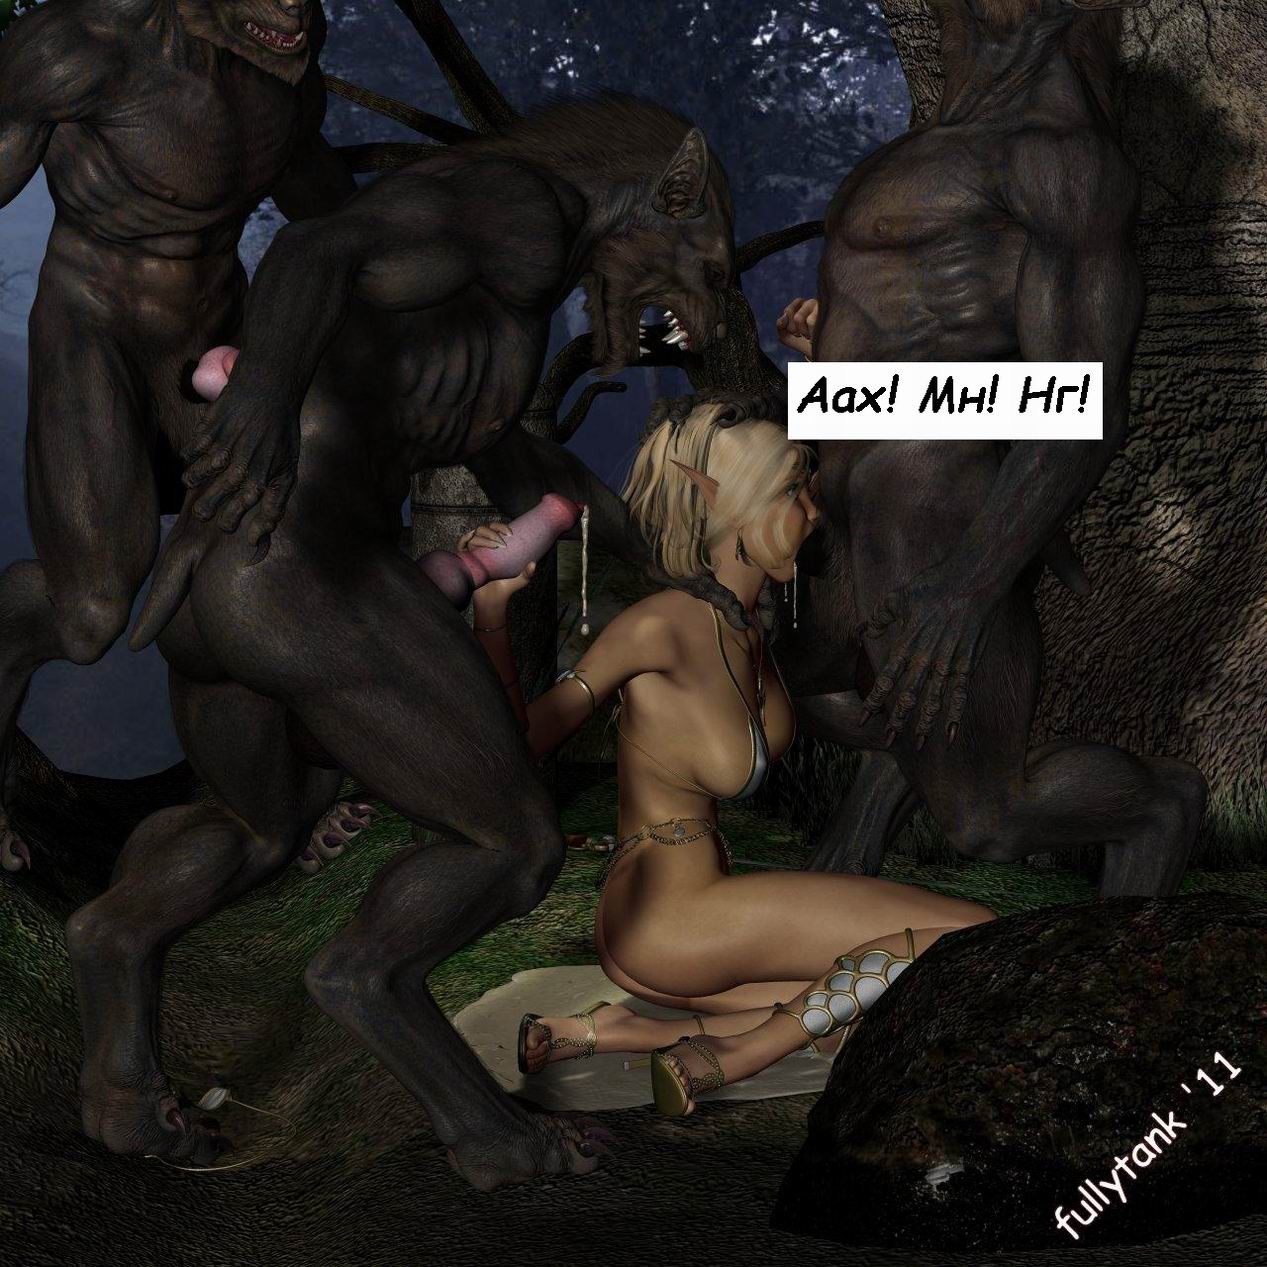 Hot werewolf girl fucks a guy hentia  hentai thumbs